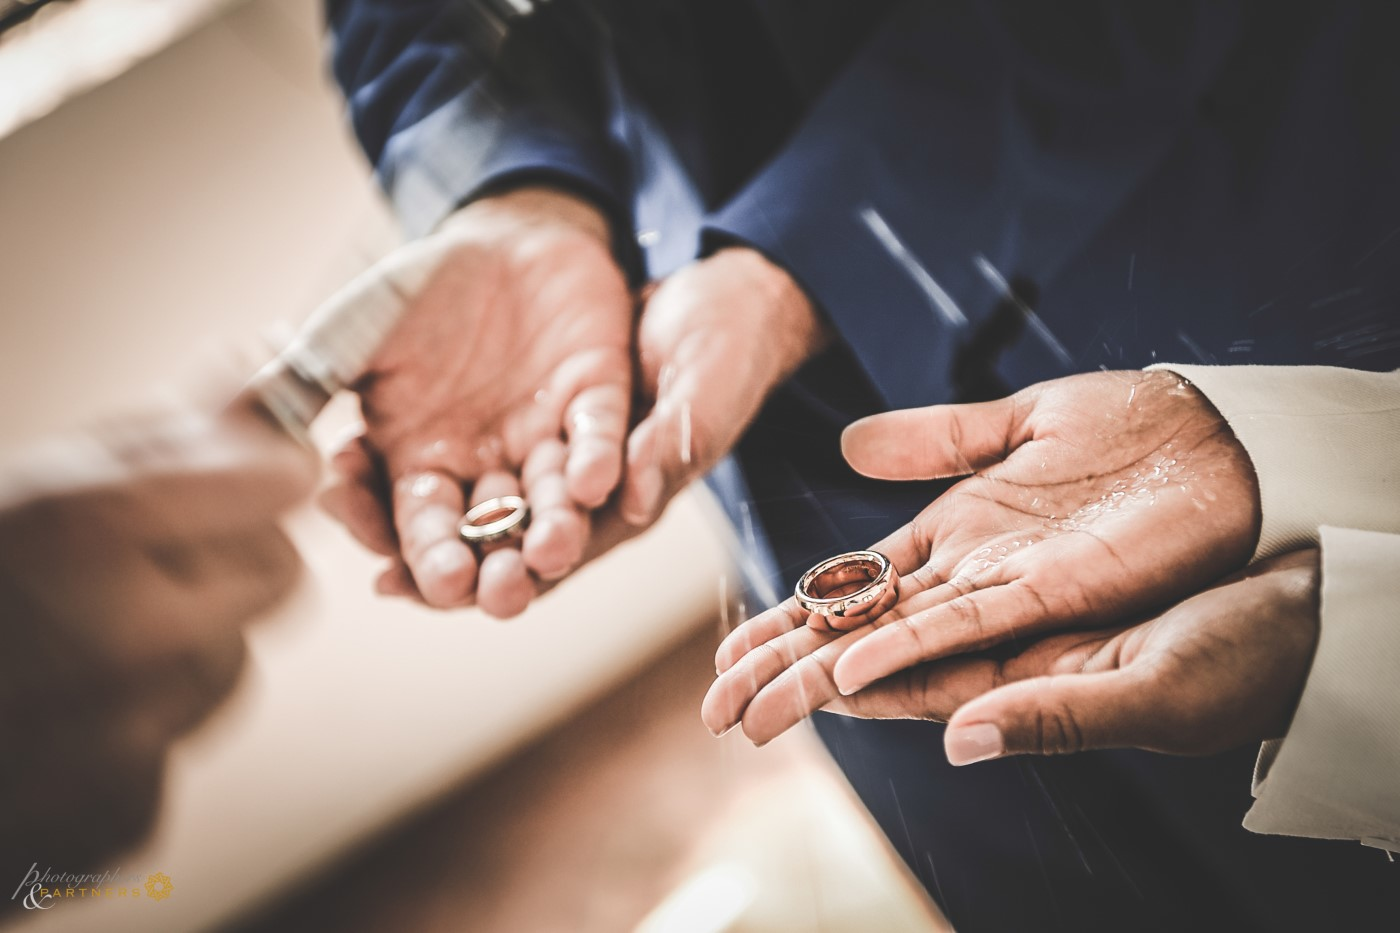 Blessing of the wedding rings.